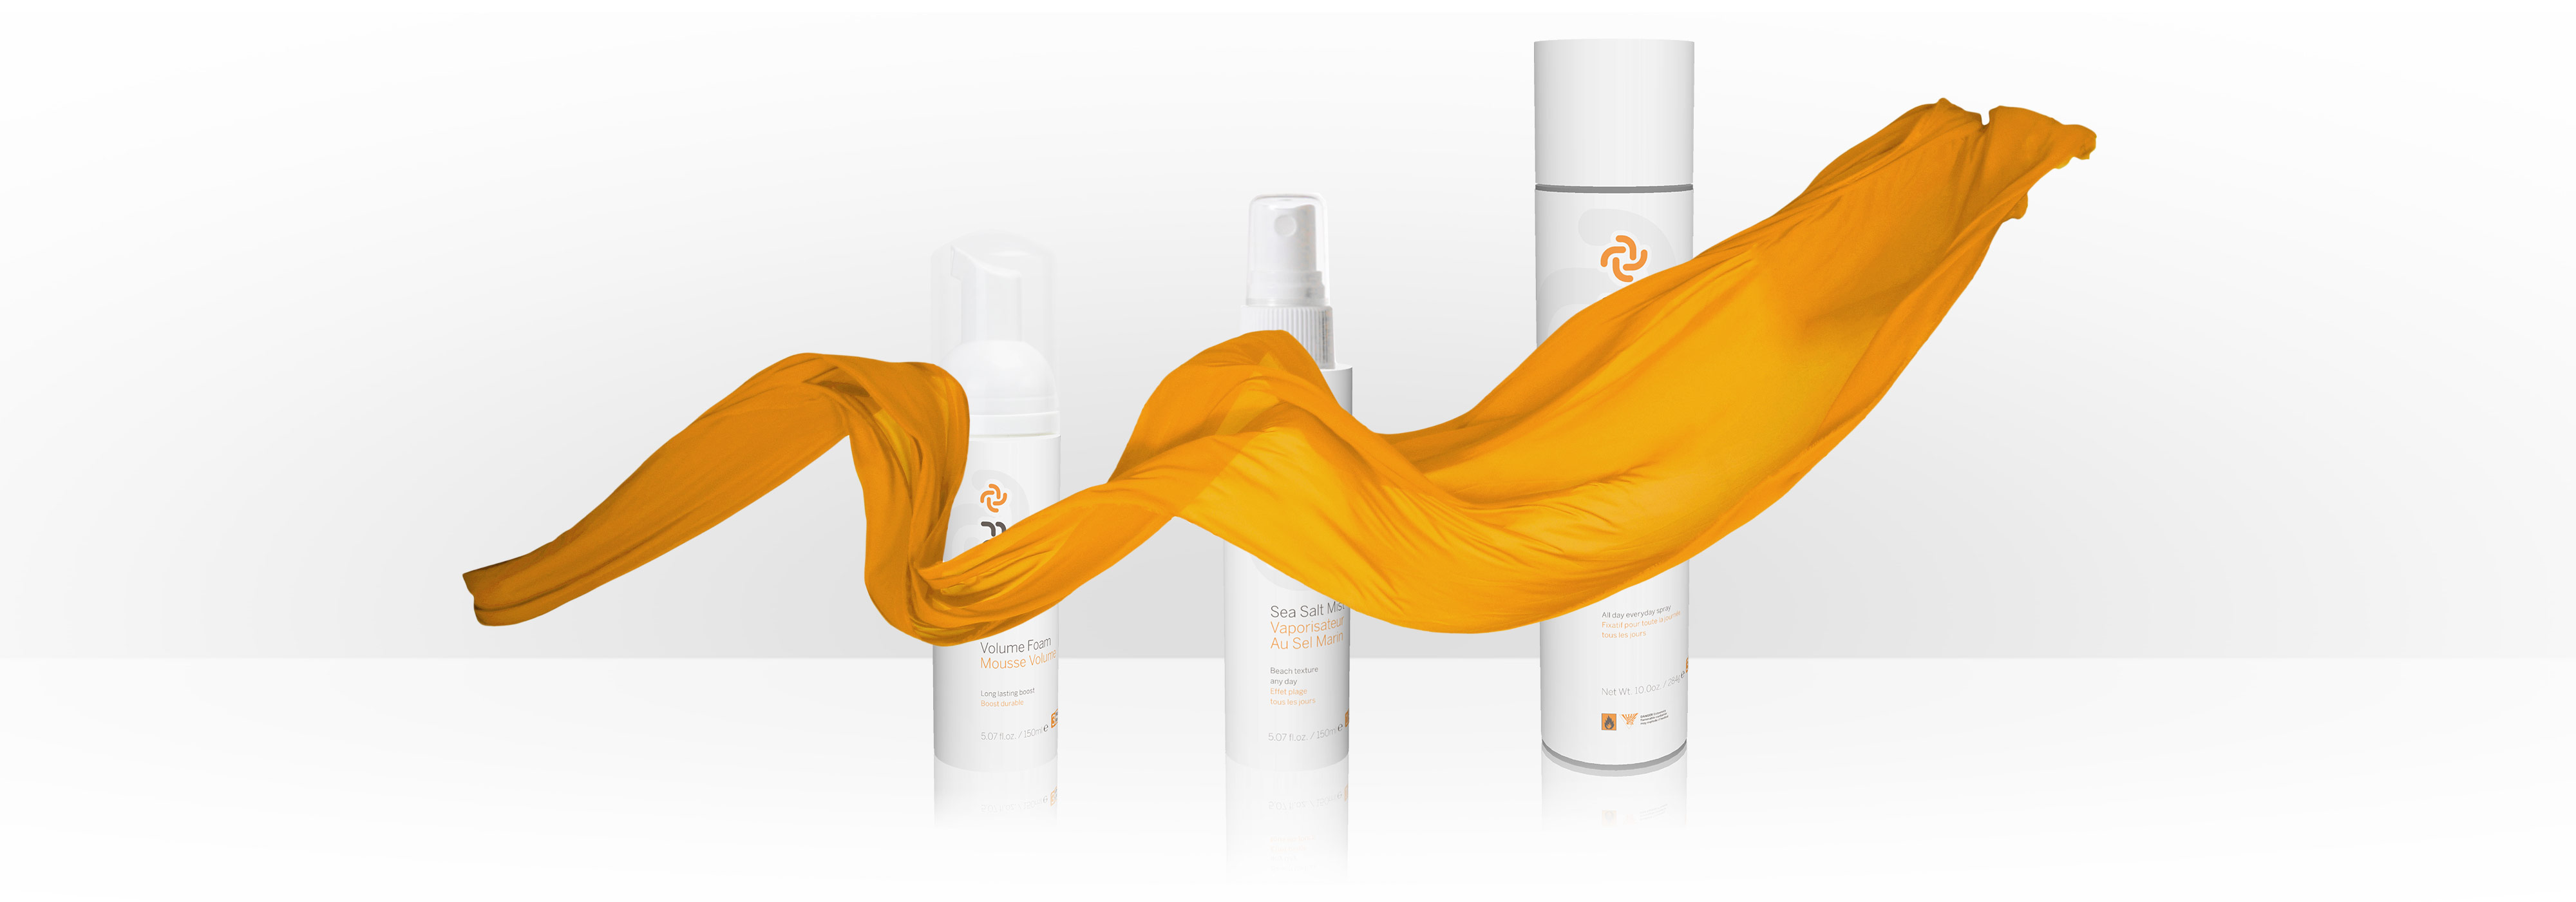 Fuel Haircare Packaging